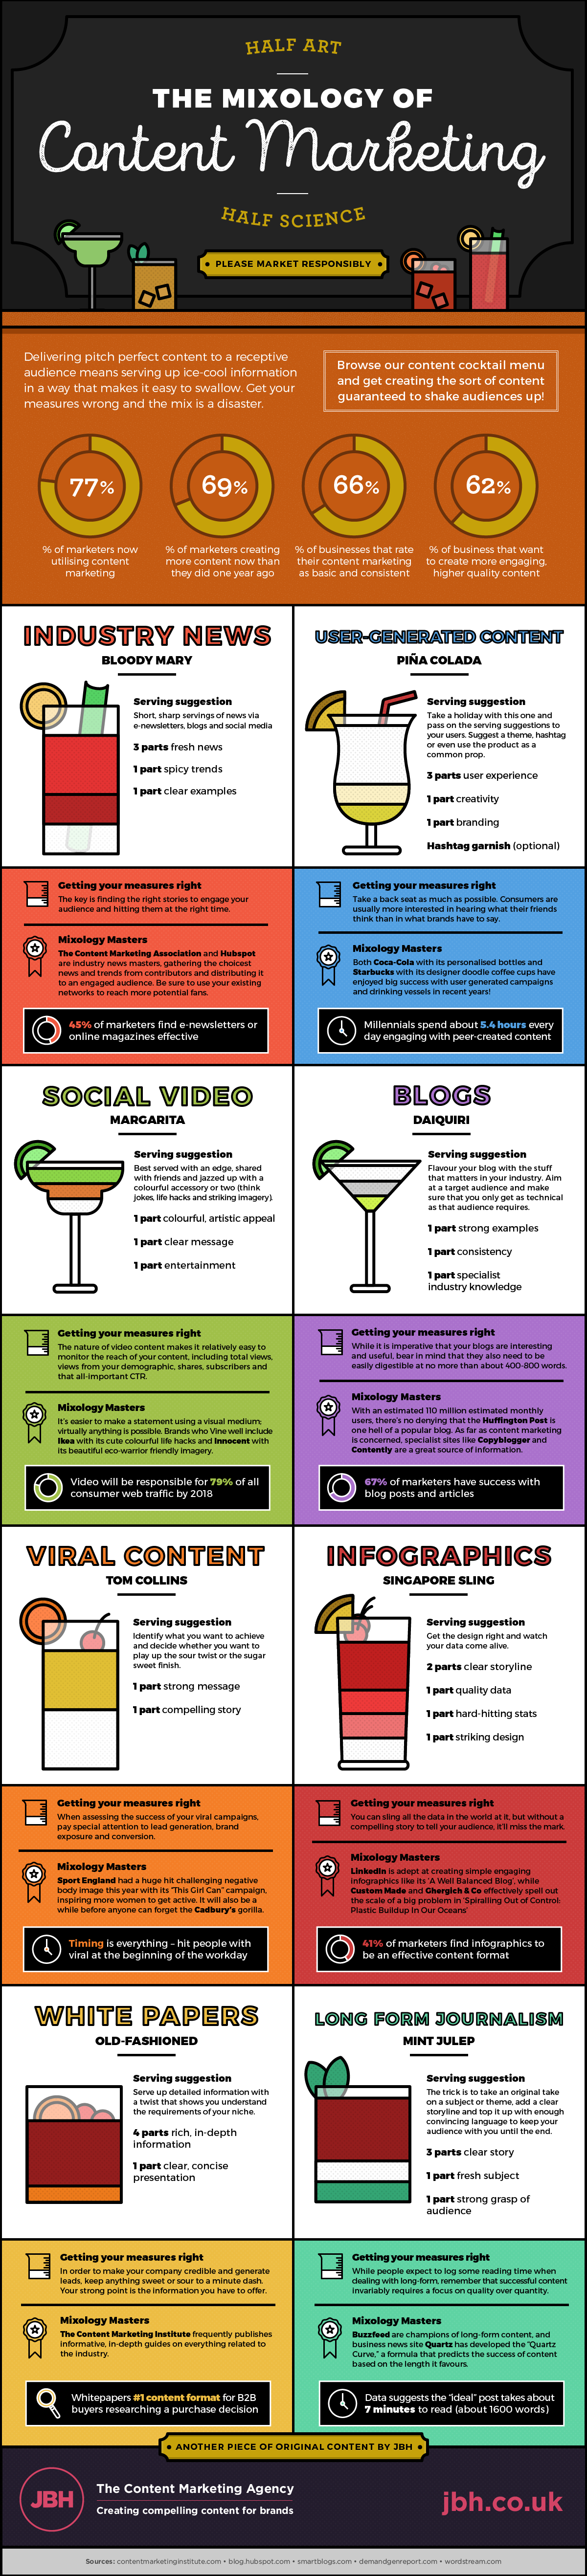 Infographic – The Mixology of Content Marketing